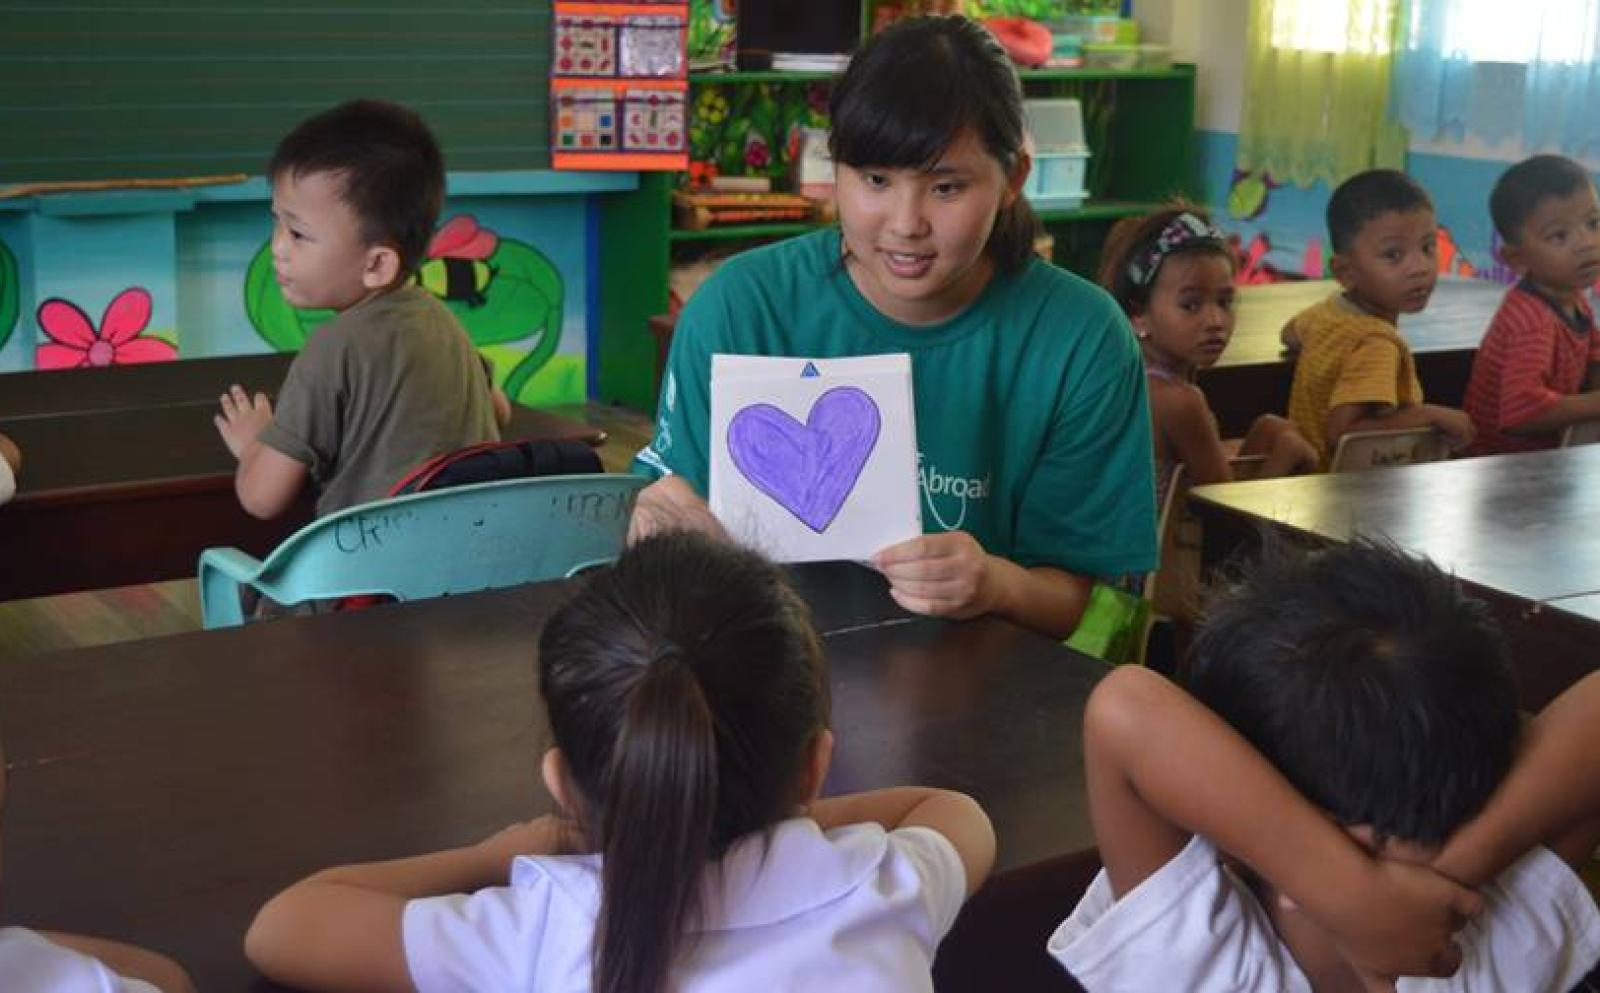 A Japanese Childcare volunteer teaches students about shapes on the Childcare project in the Philippines